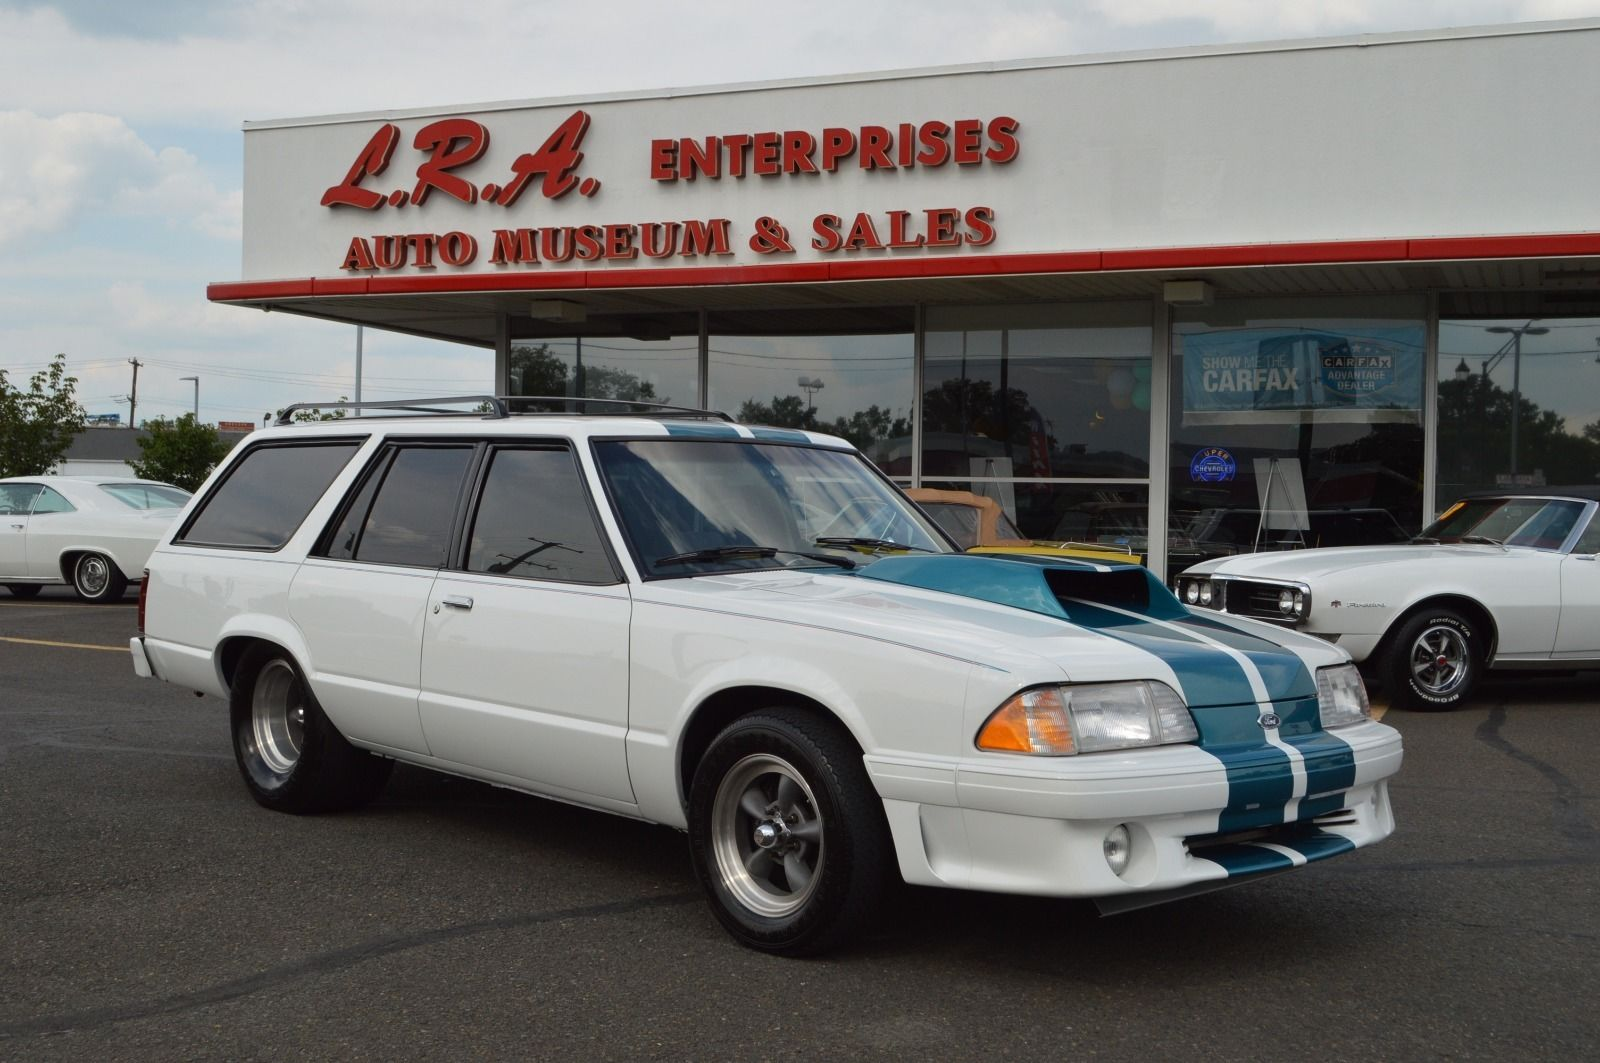 Money No Object: Mustang Wagon? Confused Fairmont? We Don't Care! This Fox Mutt Is Awesome!